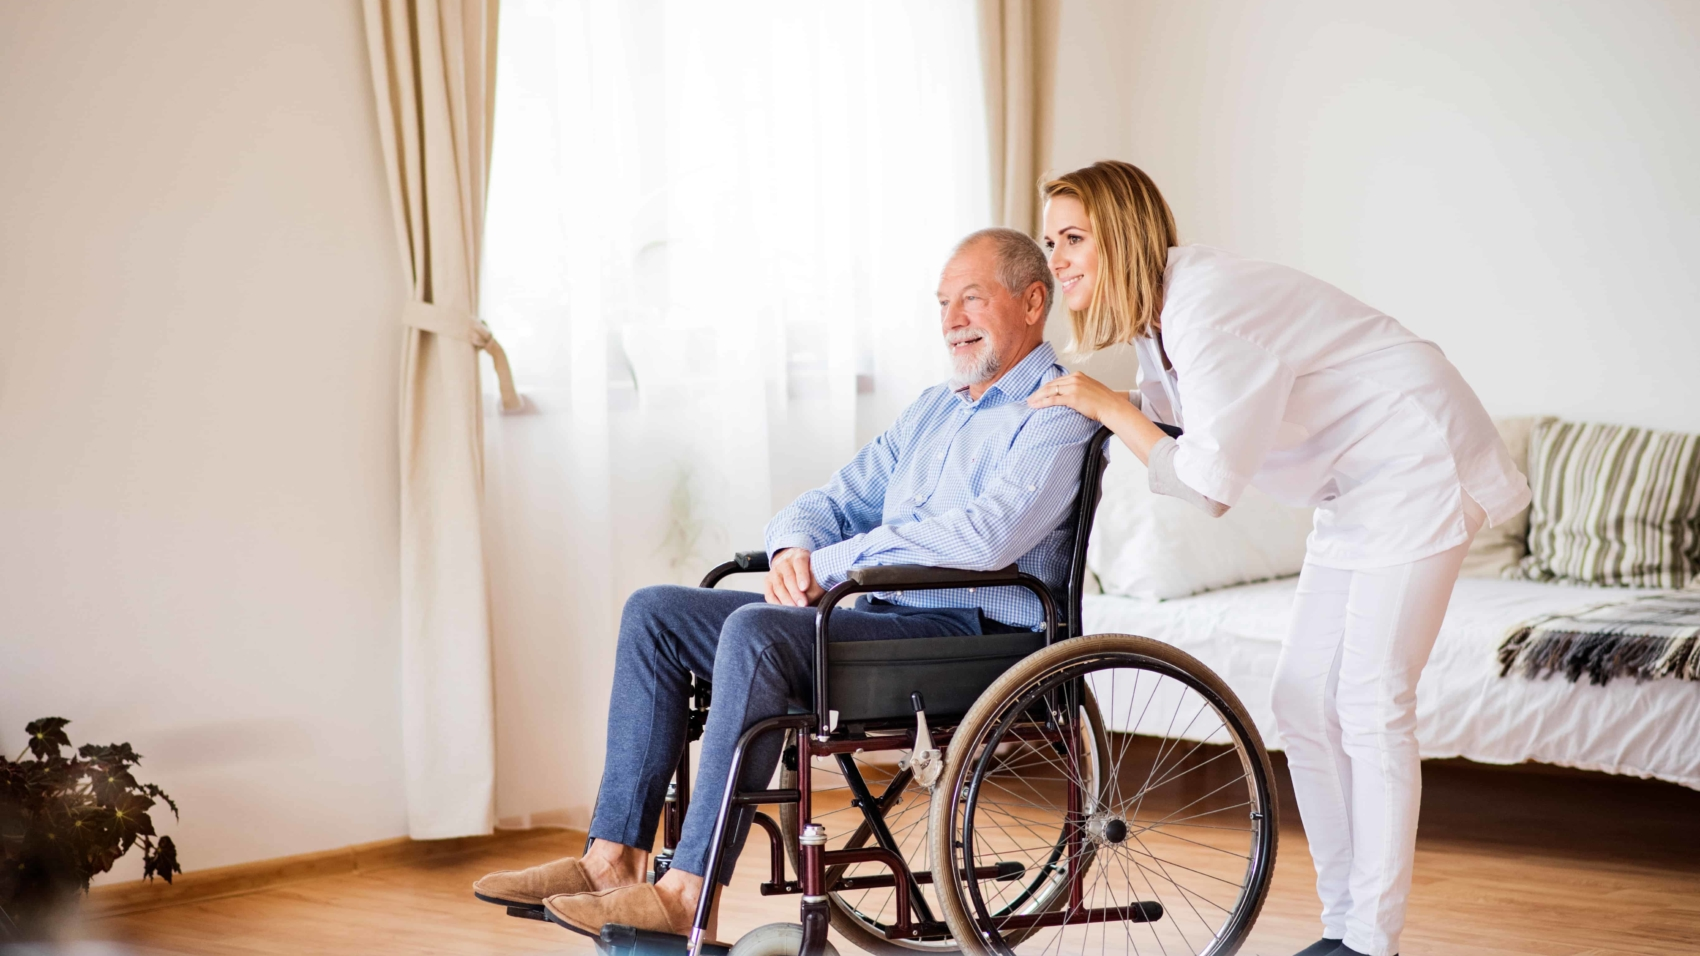 Health visitor or a nurse and a senior man in a wheelchair during home visit. Man and woman looking out of a window.